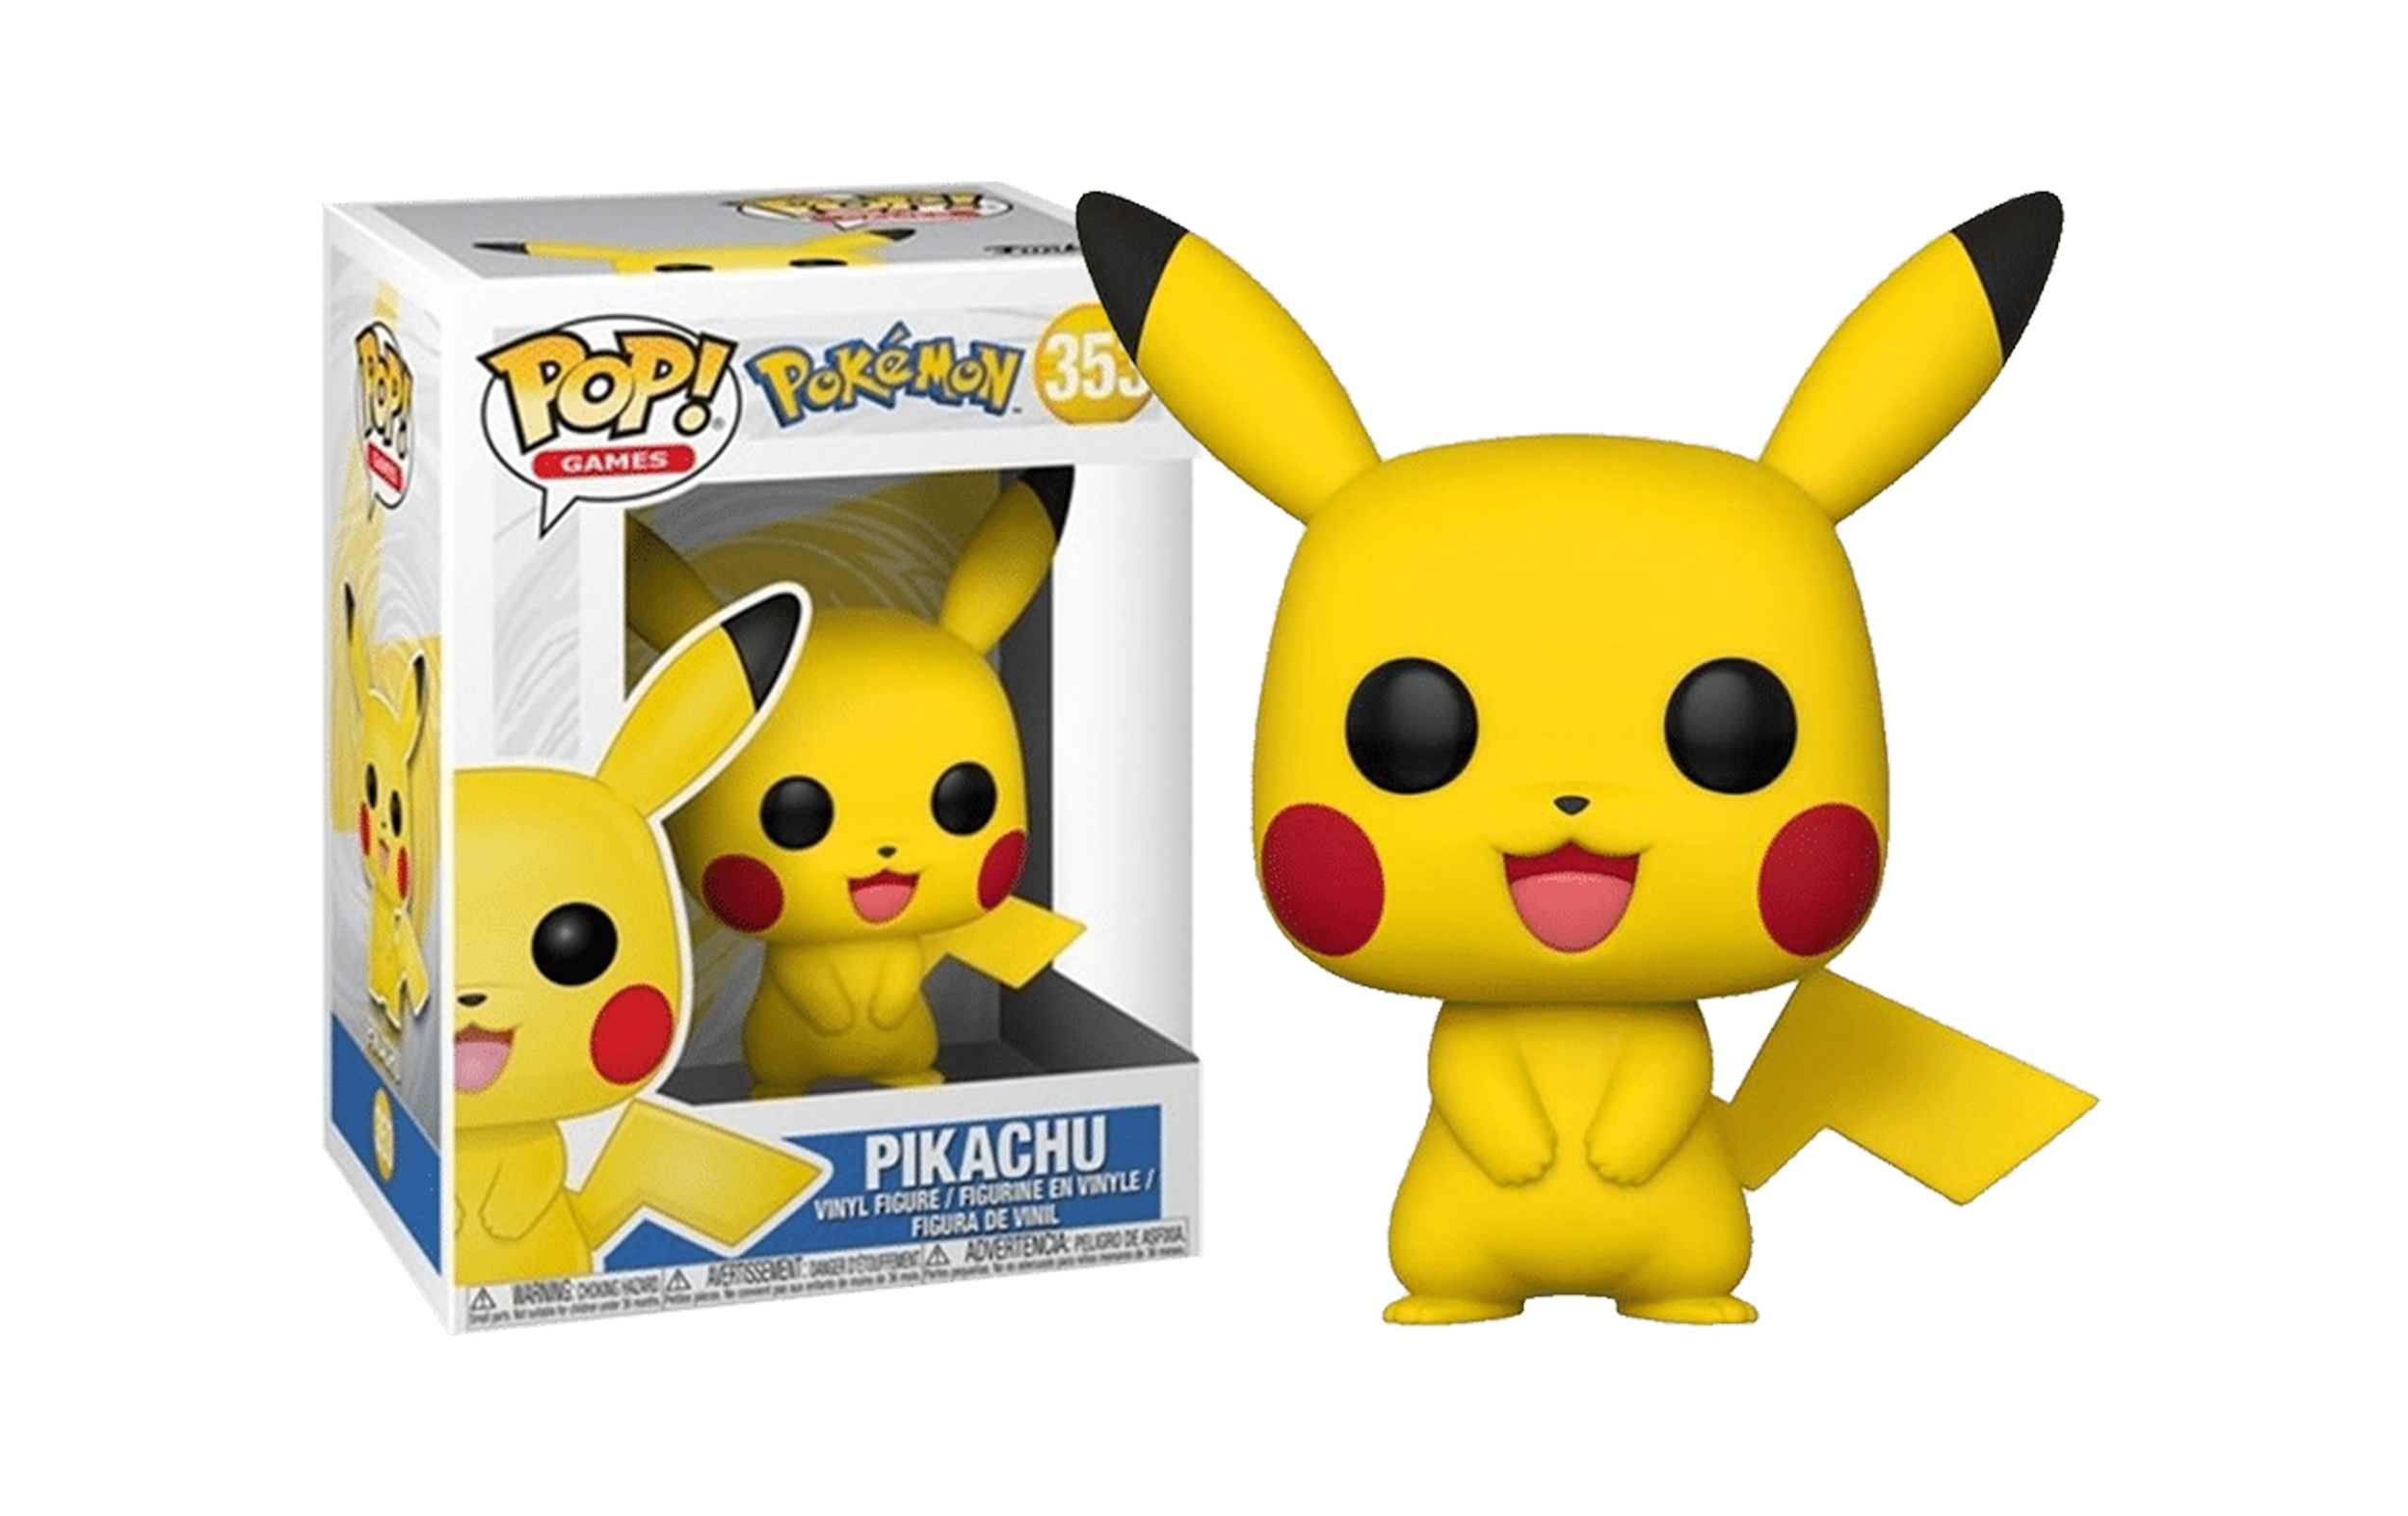 FUNKO POP PIKACHU #353 POKEMON GAMES